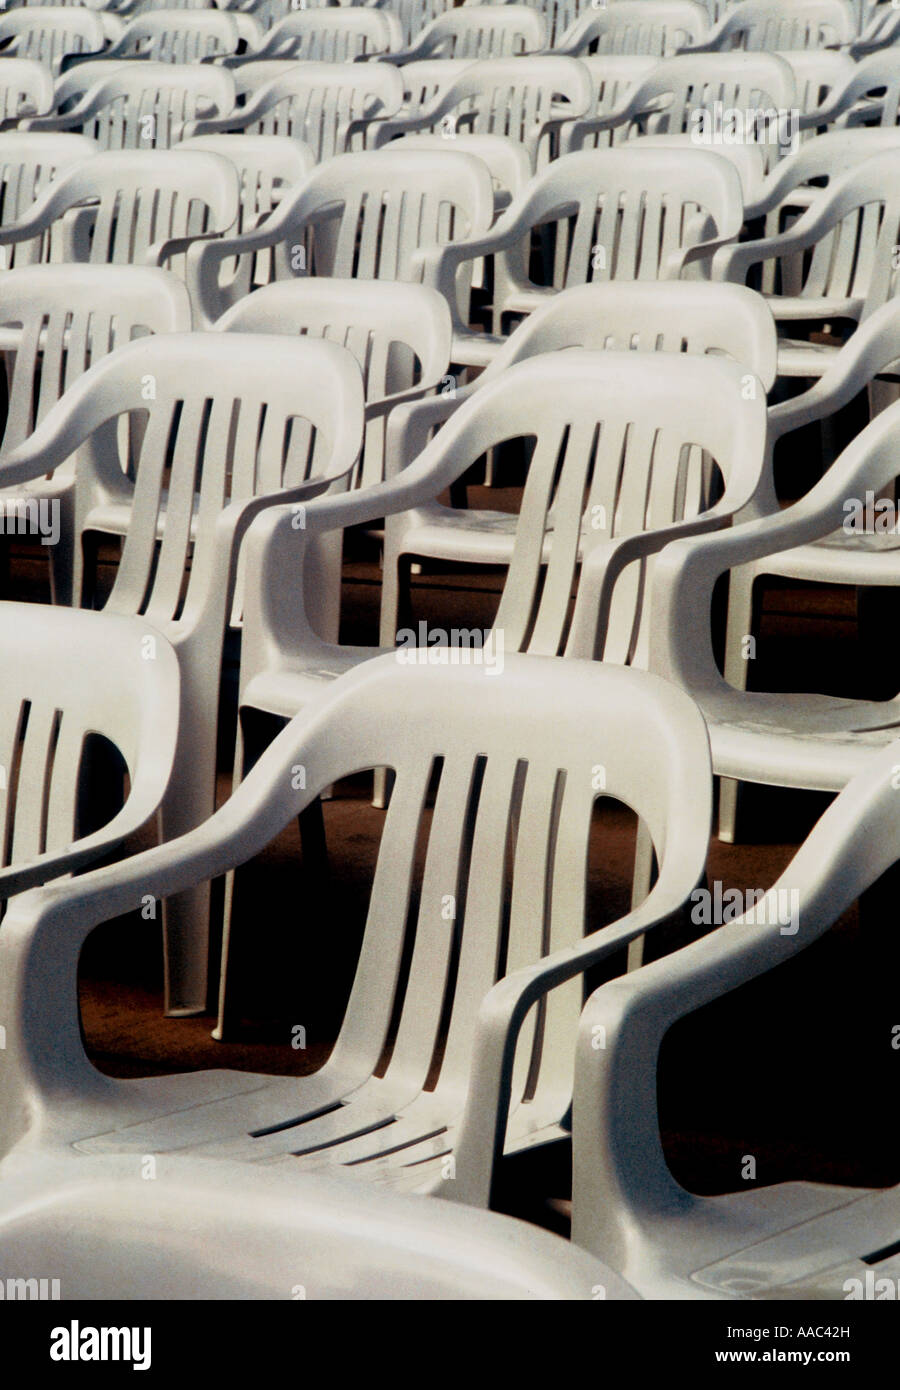 Room full of chairs Sameness conformity - Stock Image